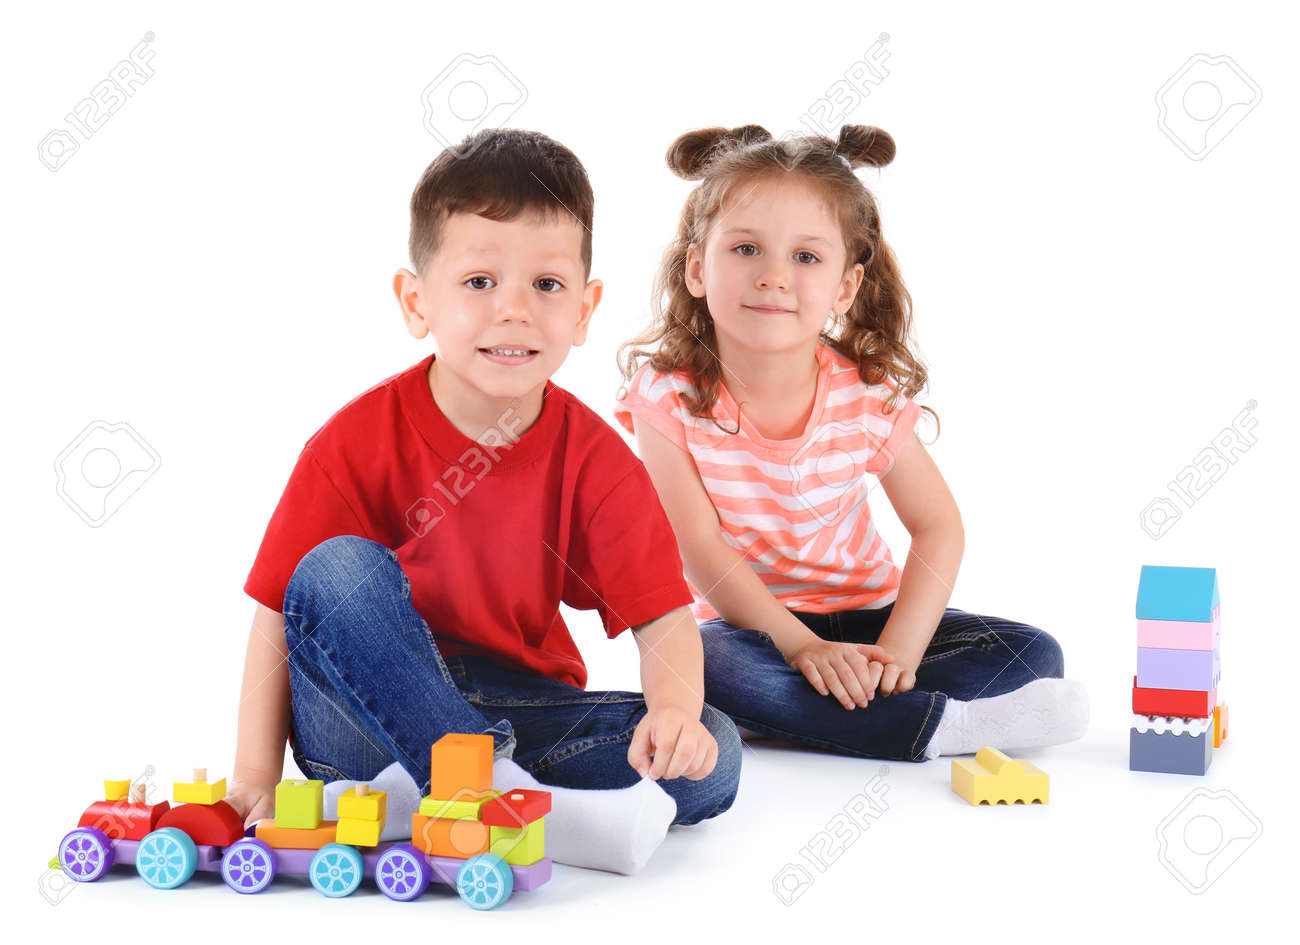 Cute little children playing with toys on white background - 129115793